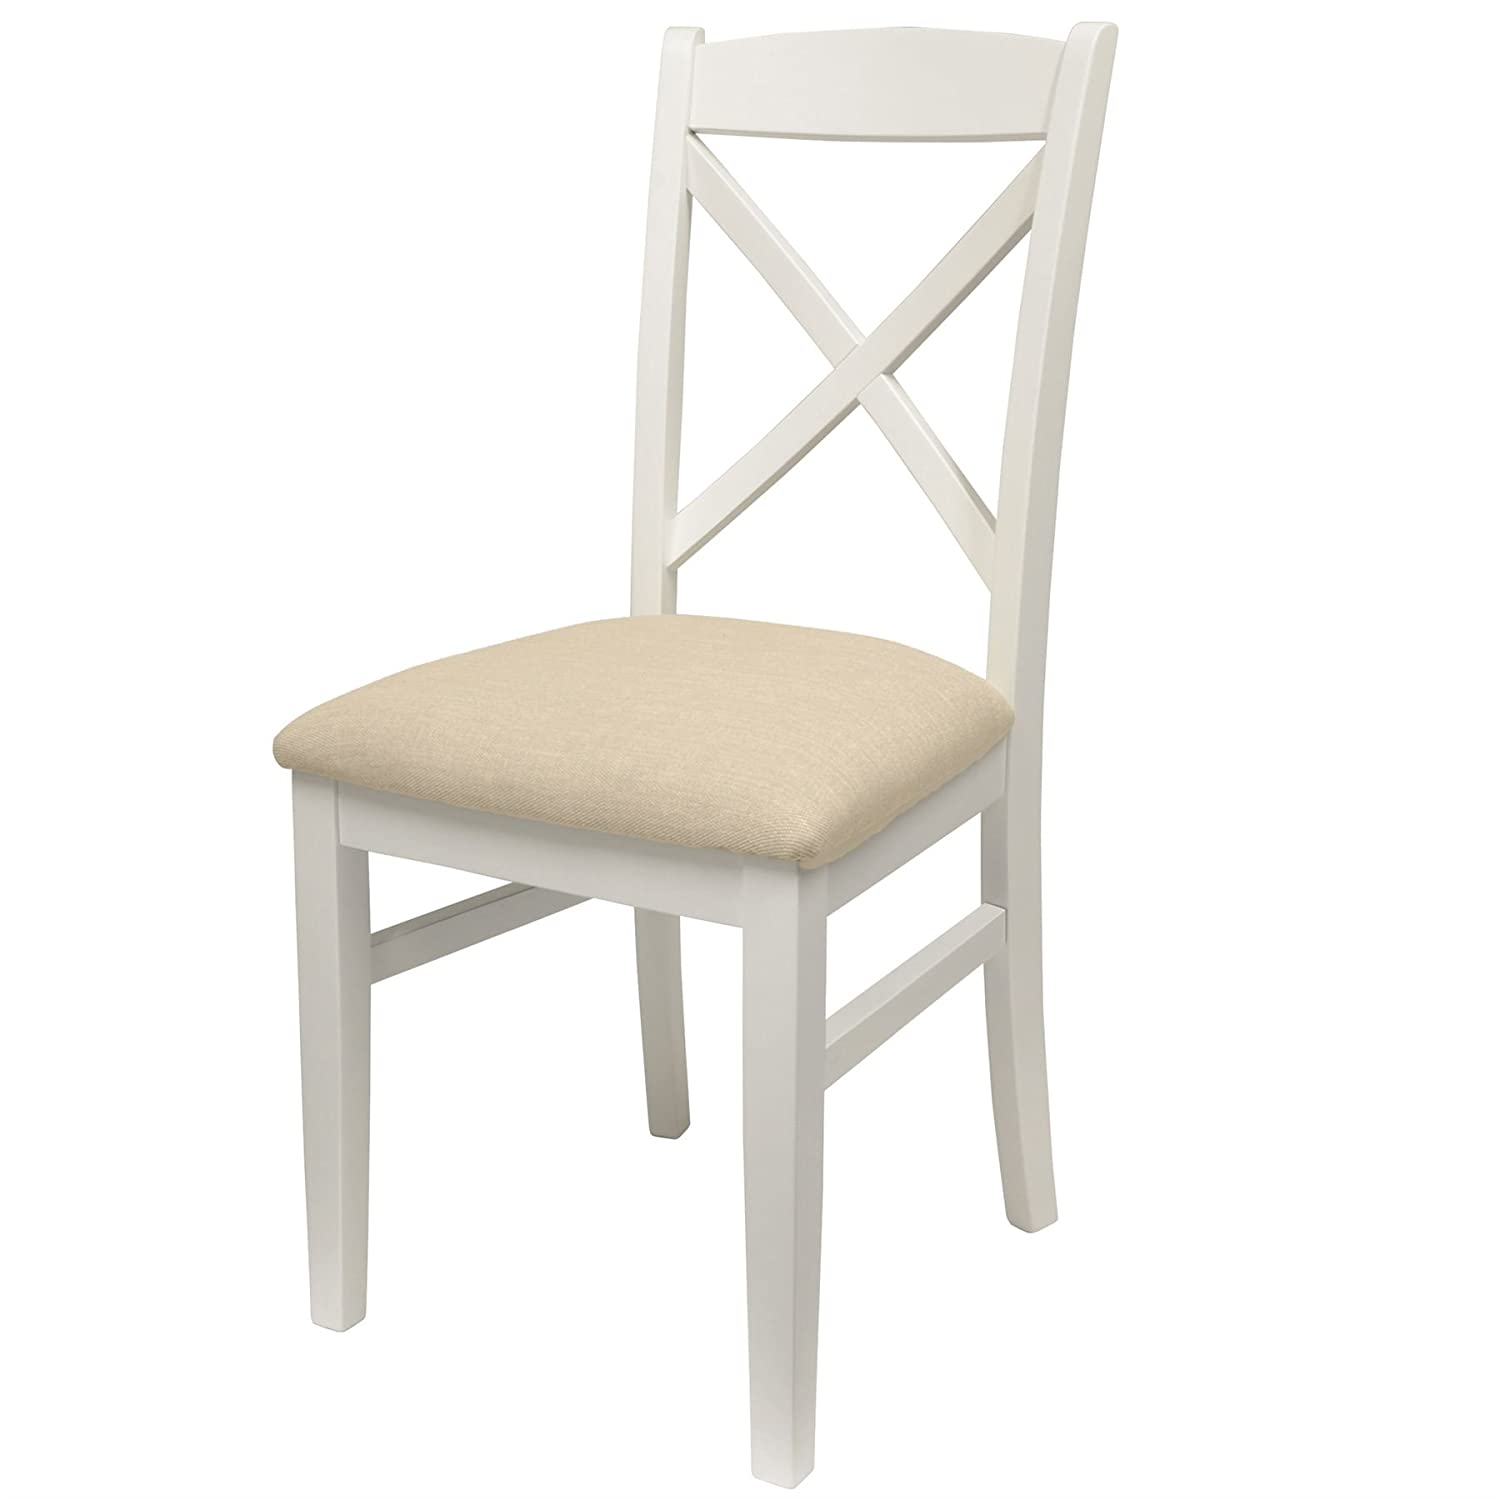 Florence Cross back upholstered chair, Stunning chair with solid construction and firm padded seat (white) Statement Furniture